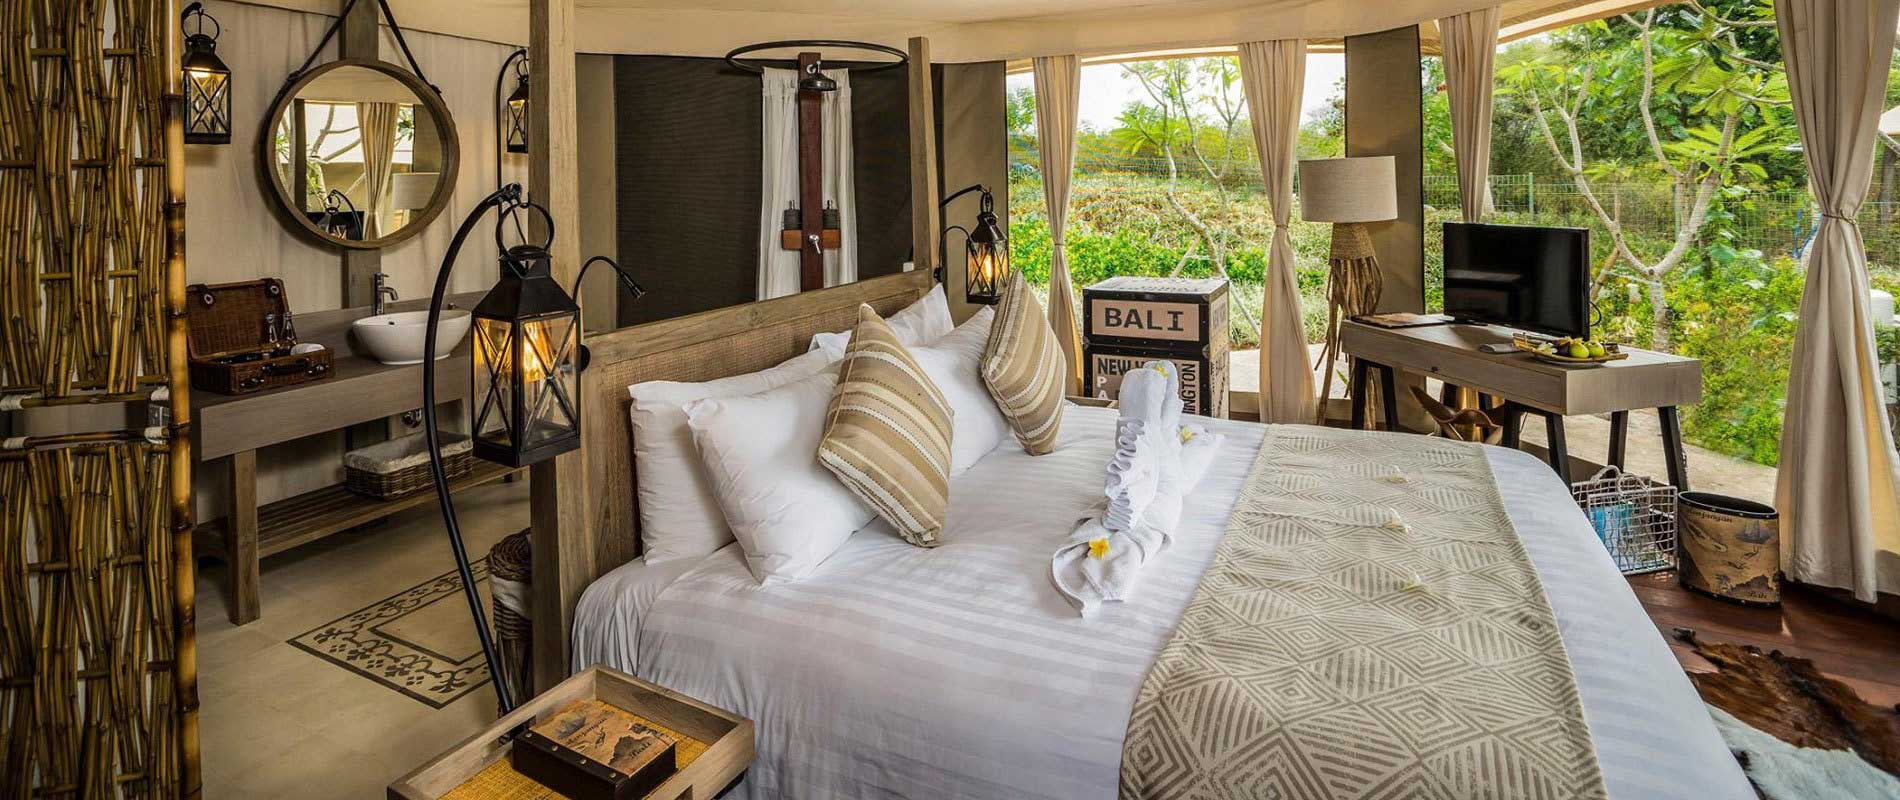 Welcome to Canvas u0026 Tent & Luxury Canvas Safari Tents in USA | Canvas and Tent